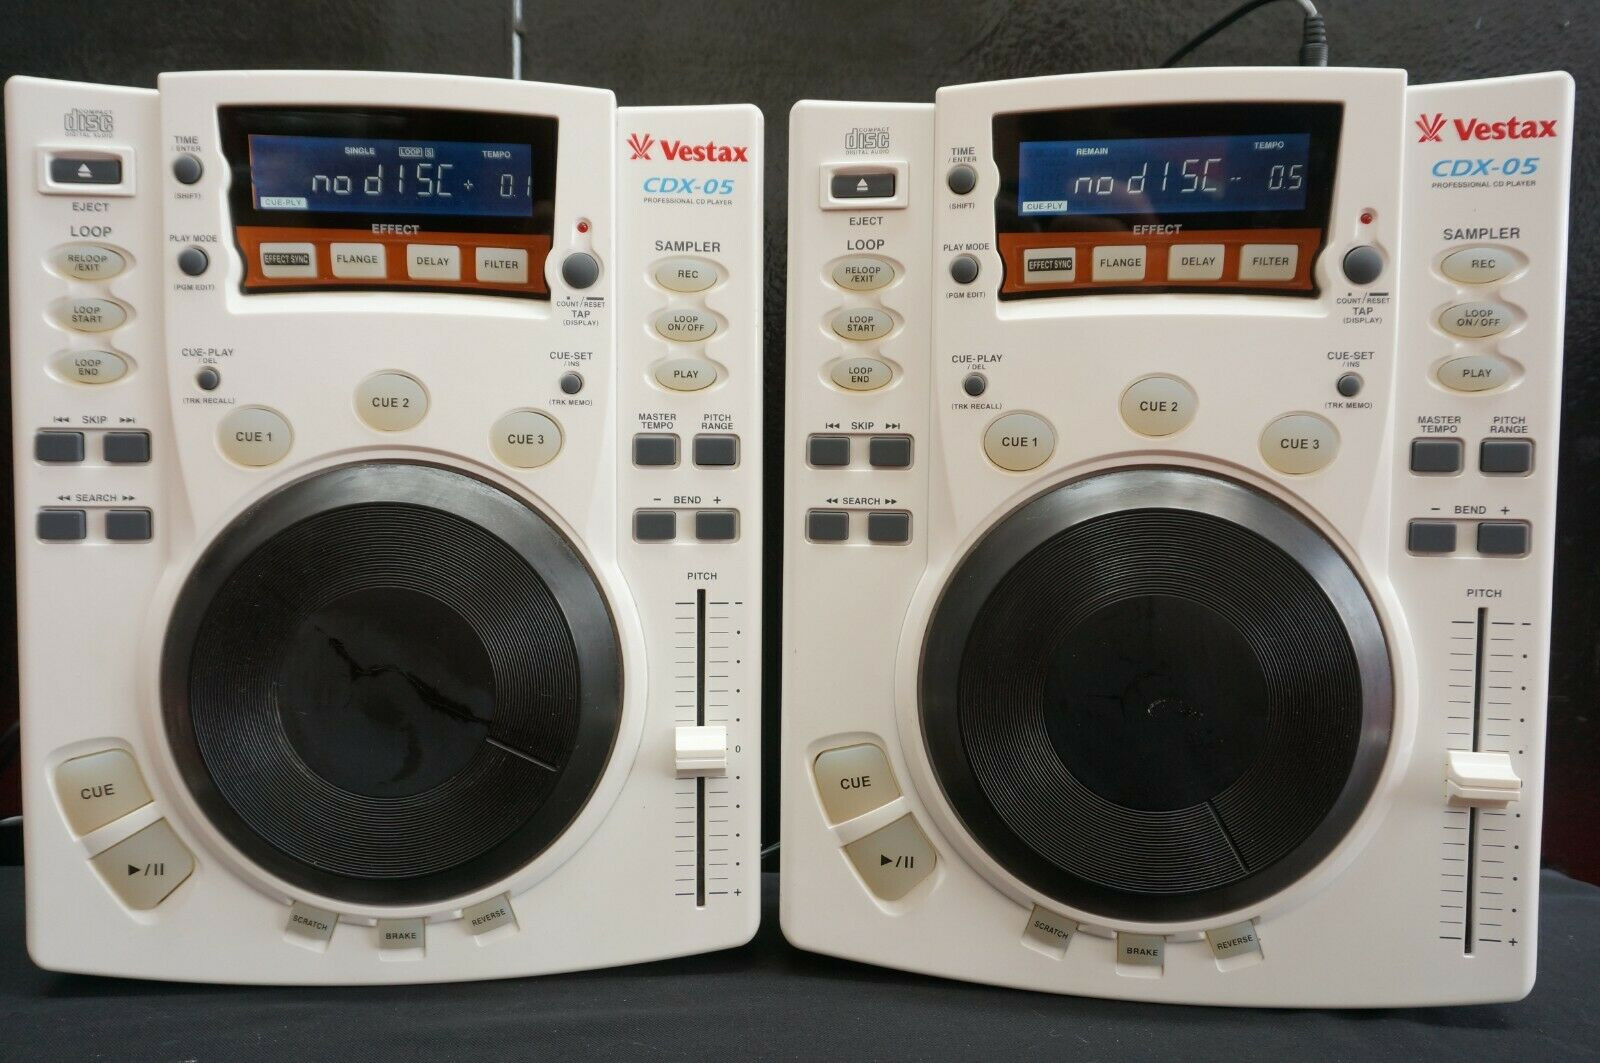 Rare White Vestax CDX-05 Professional Scratch DJ CD Player W/ Effects CDJ